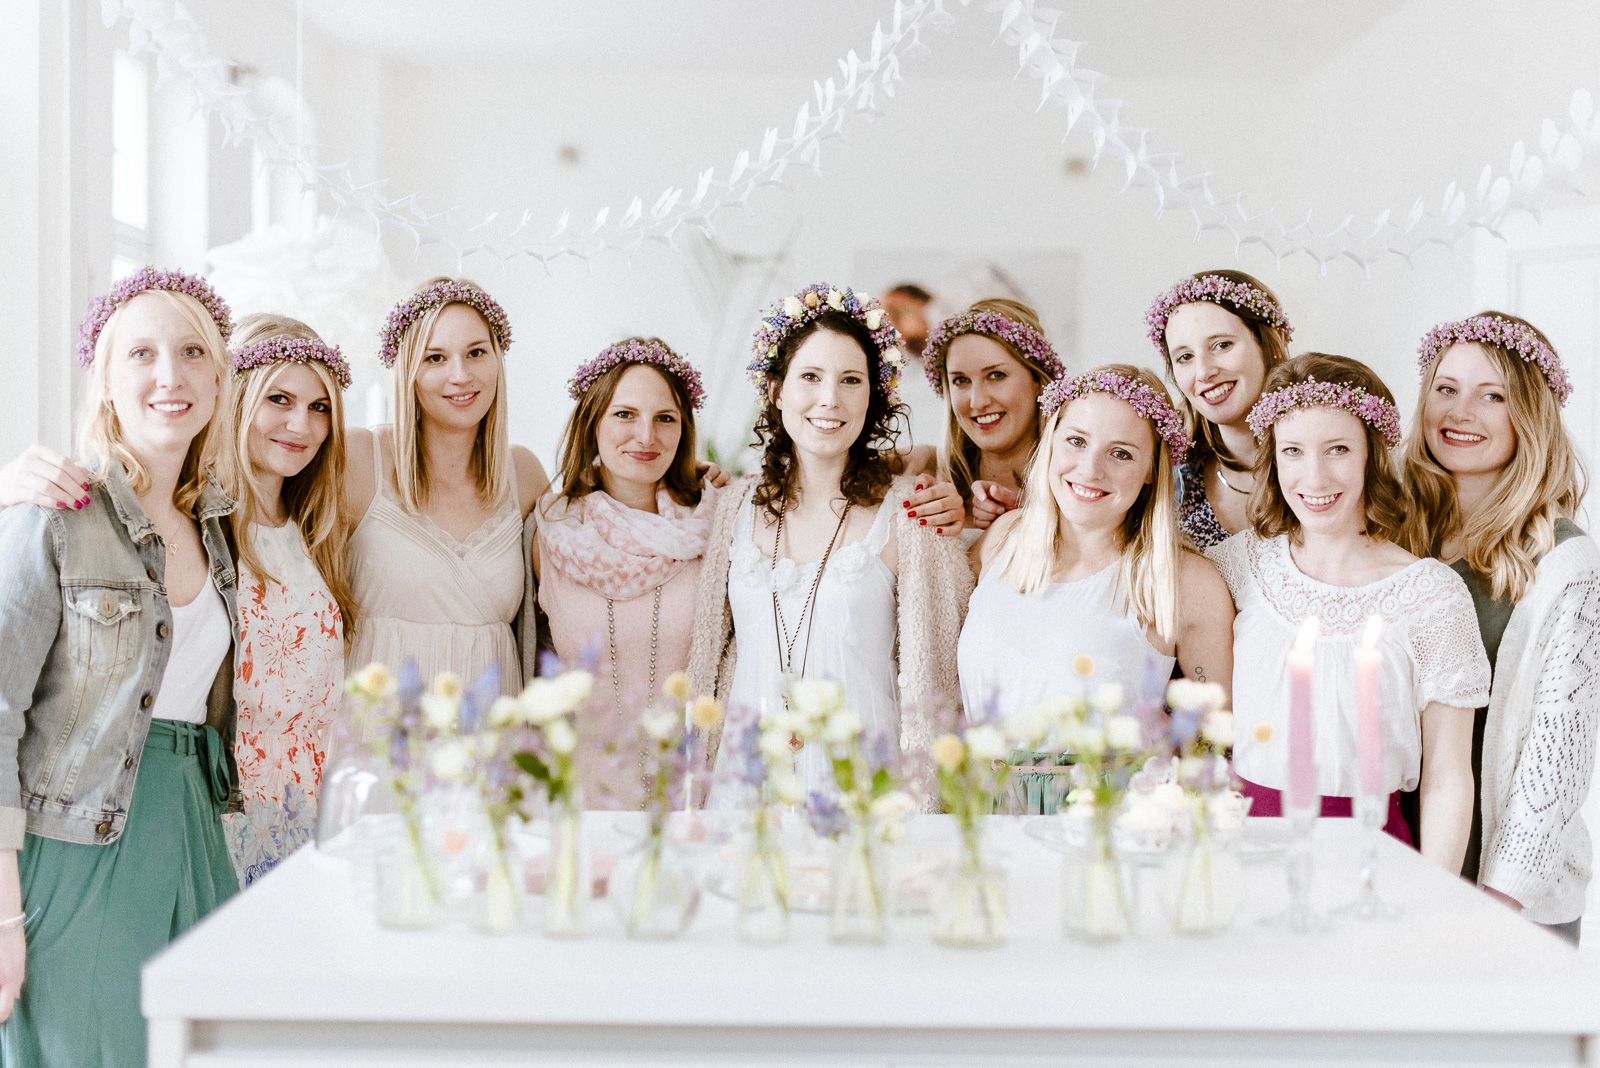 2016 - Bridal Showerlulugraphie-30